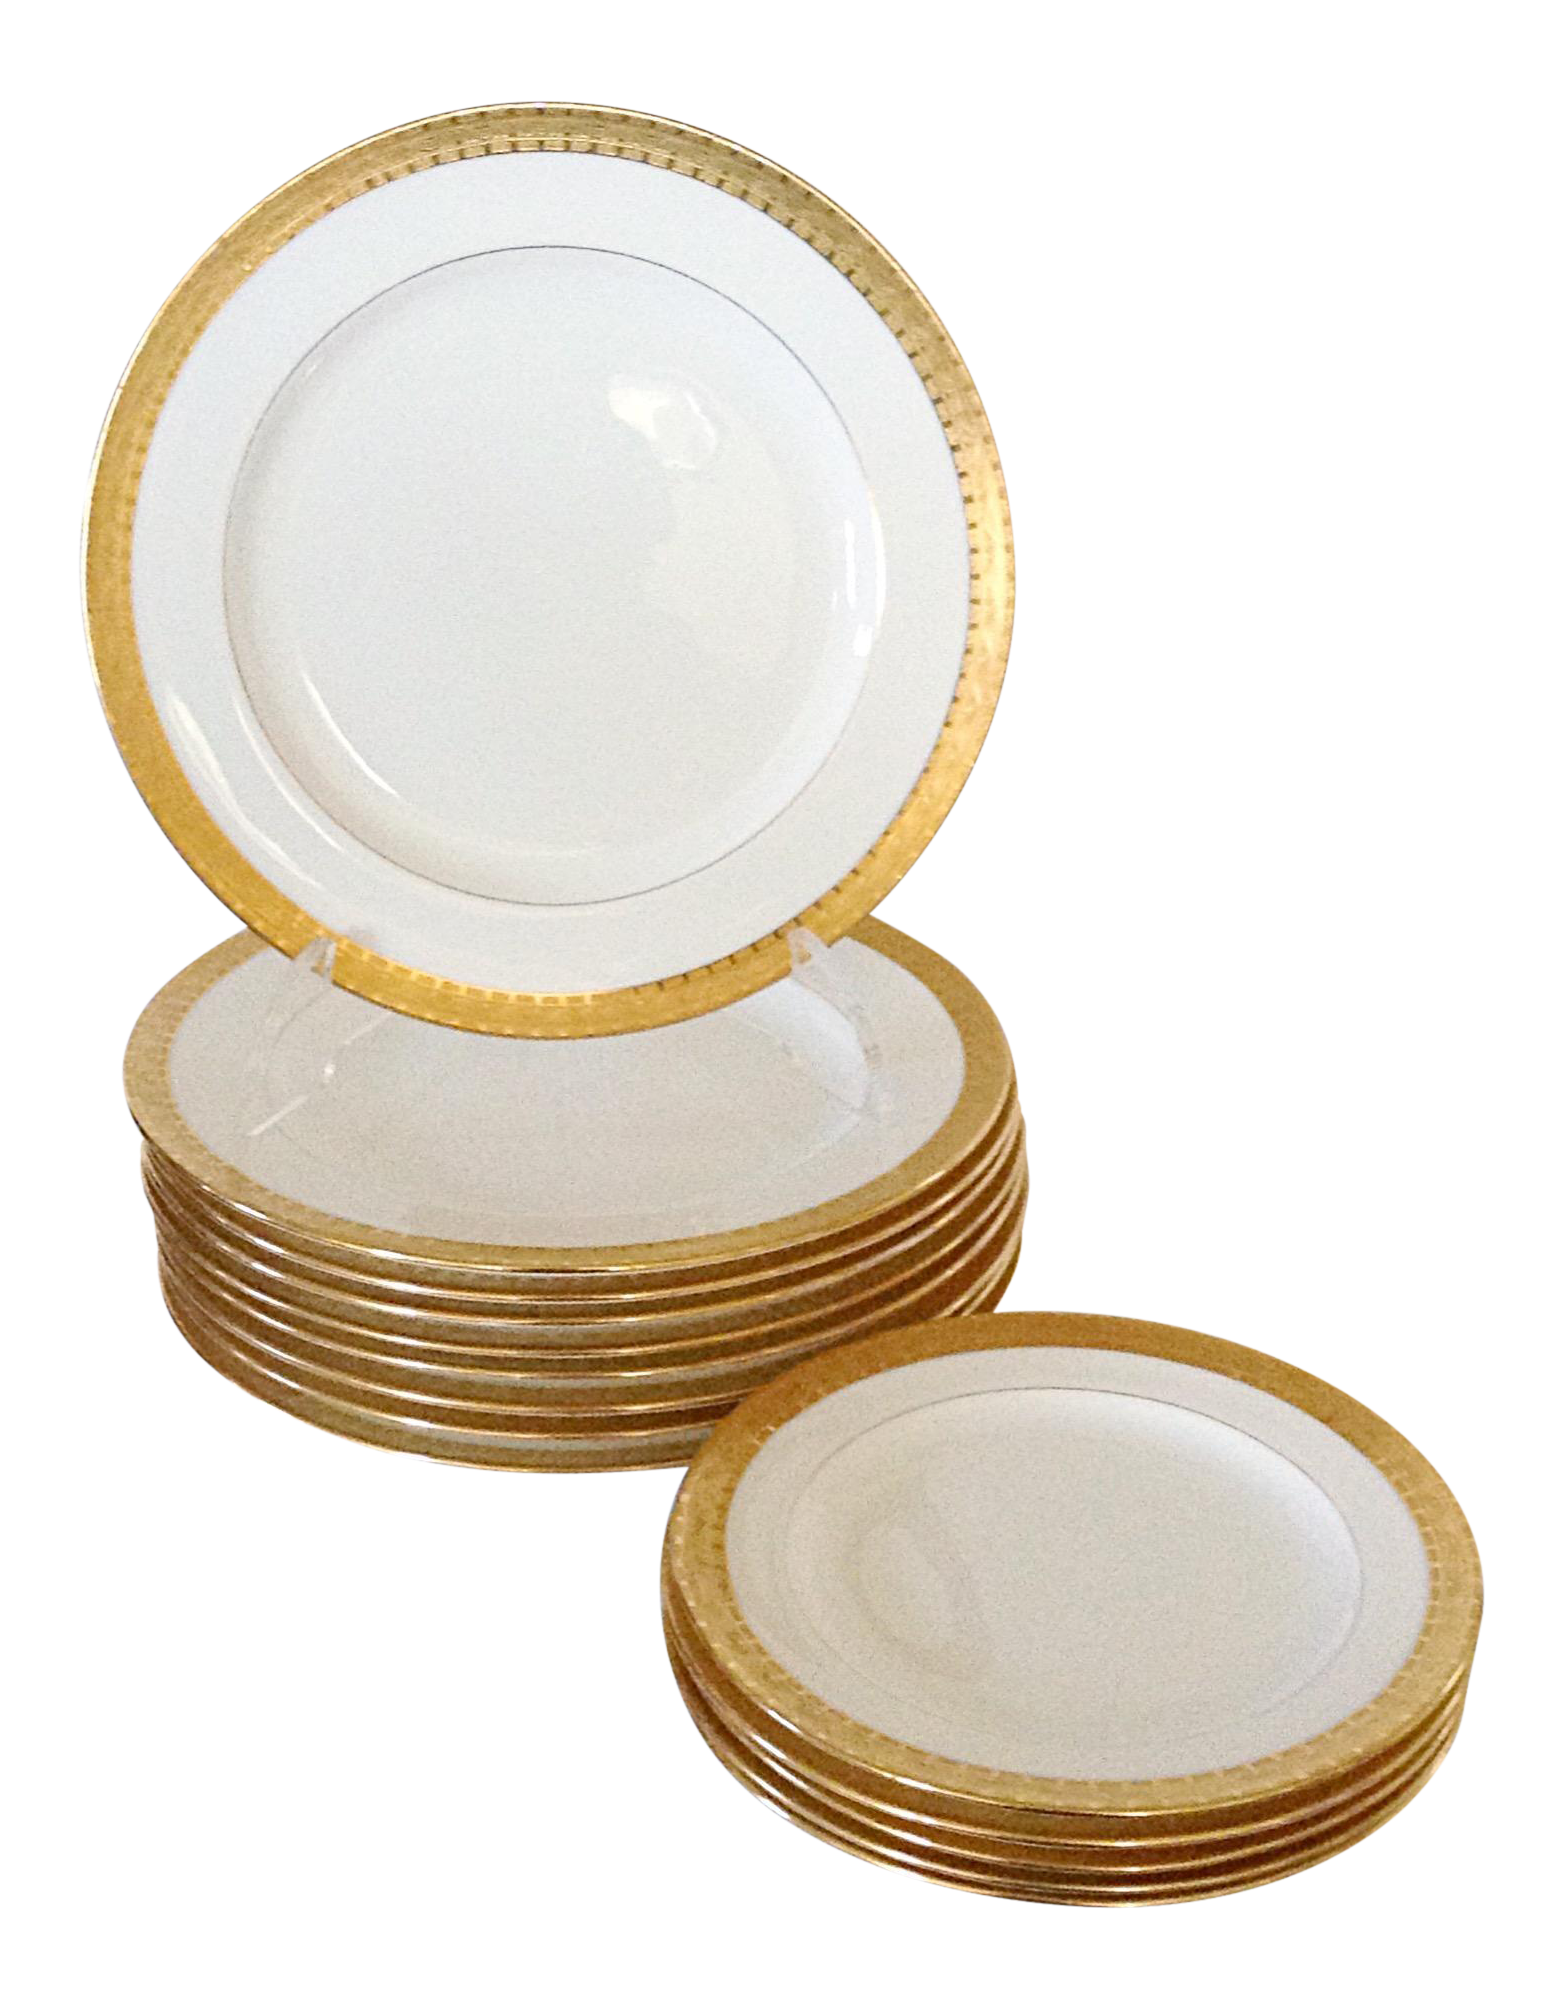 Set of 9 Milton Gold Band Dinner Plates With a set of 5 Salad Plates  sc 1 st  Chairish & Set of 9 Milton Gold Band Dinner Plates With a set of 5 Salad Plates ...